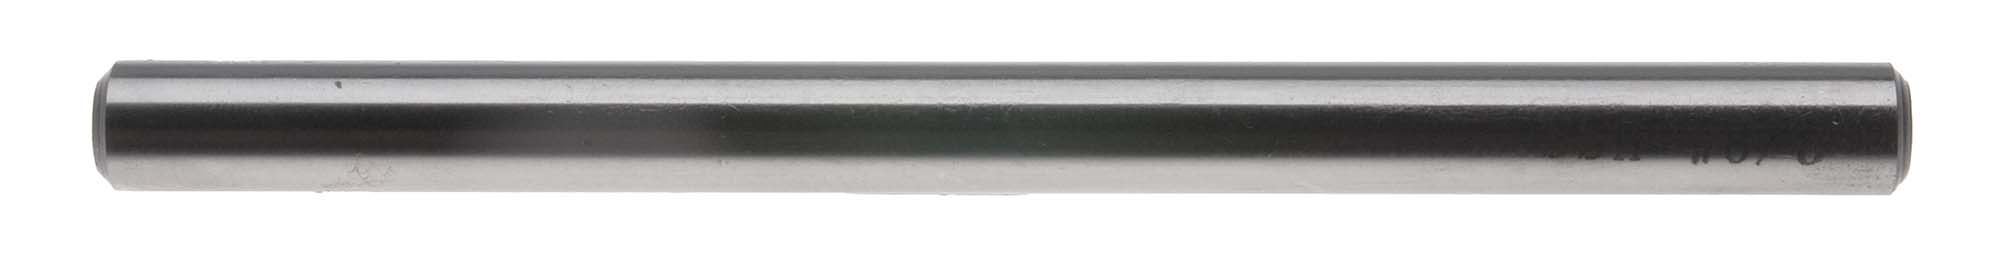 "F (.257"") Jobber Length Drill Blank, High Speed Steel"